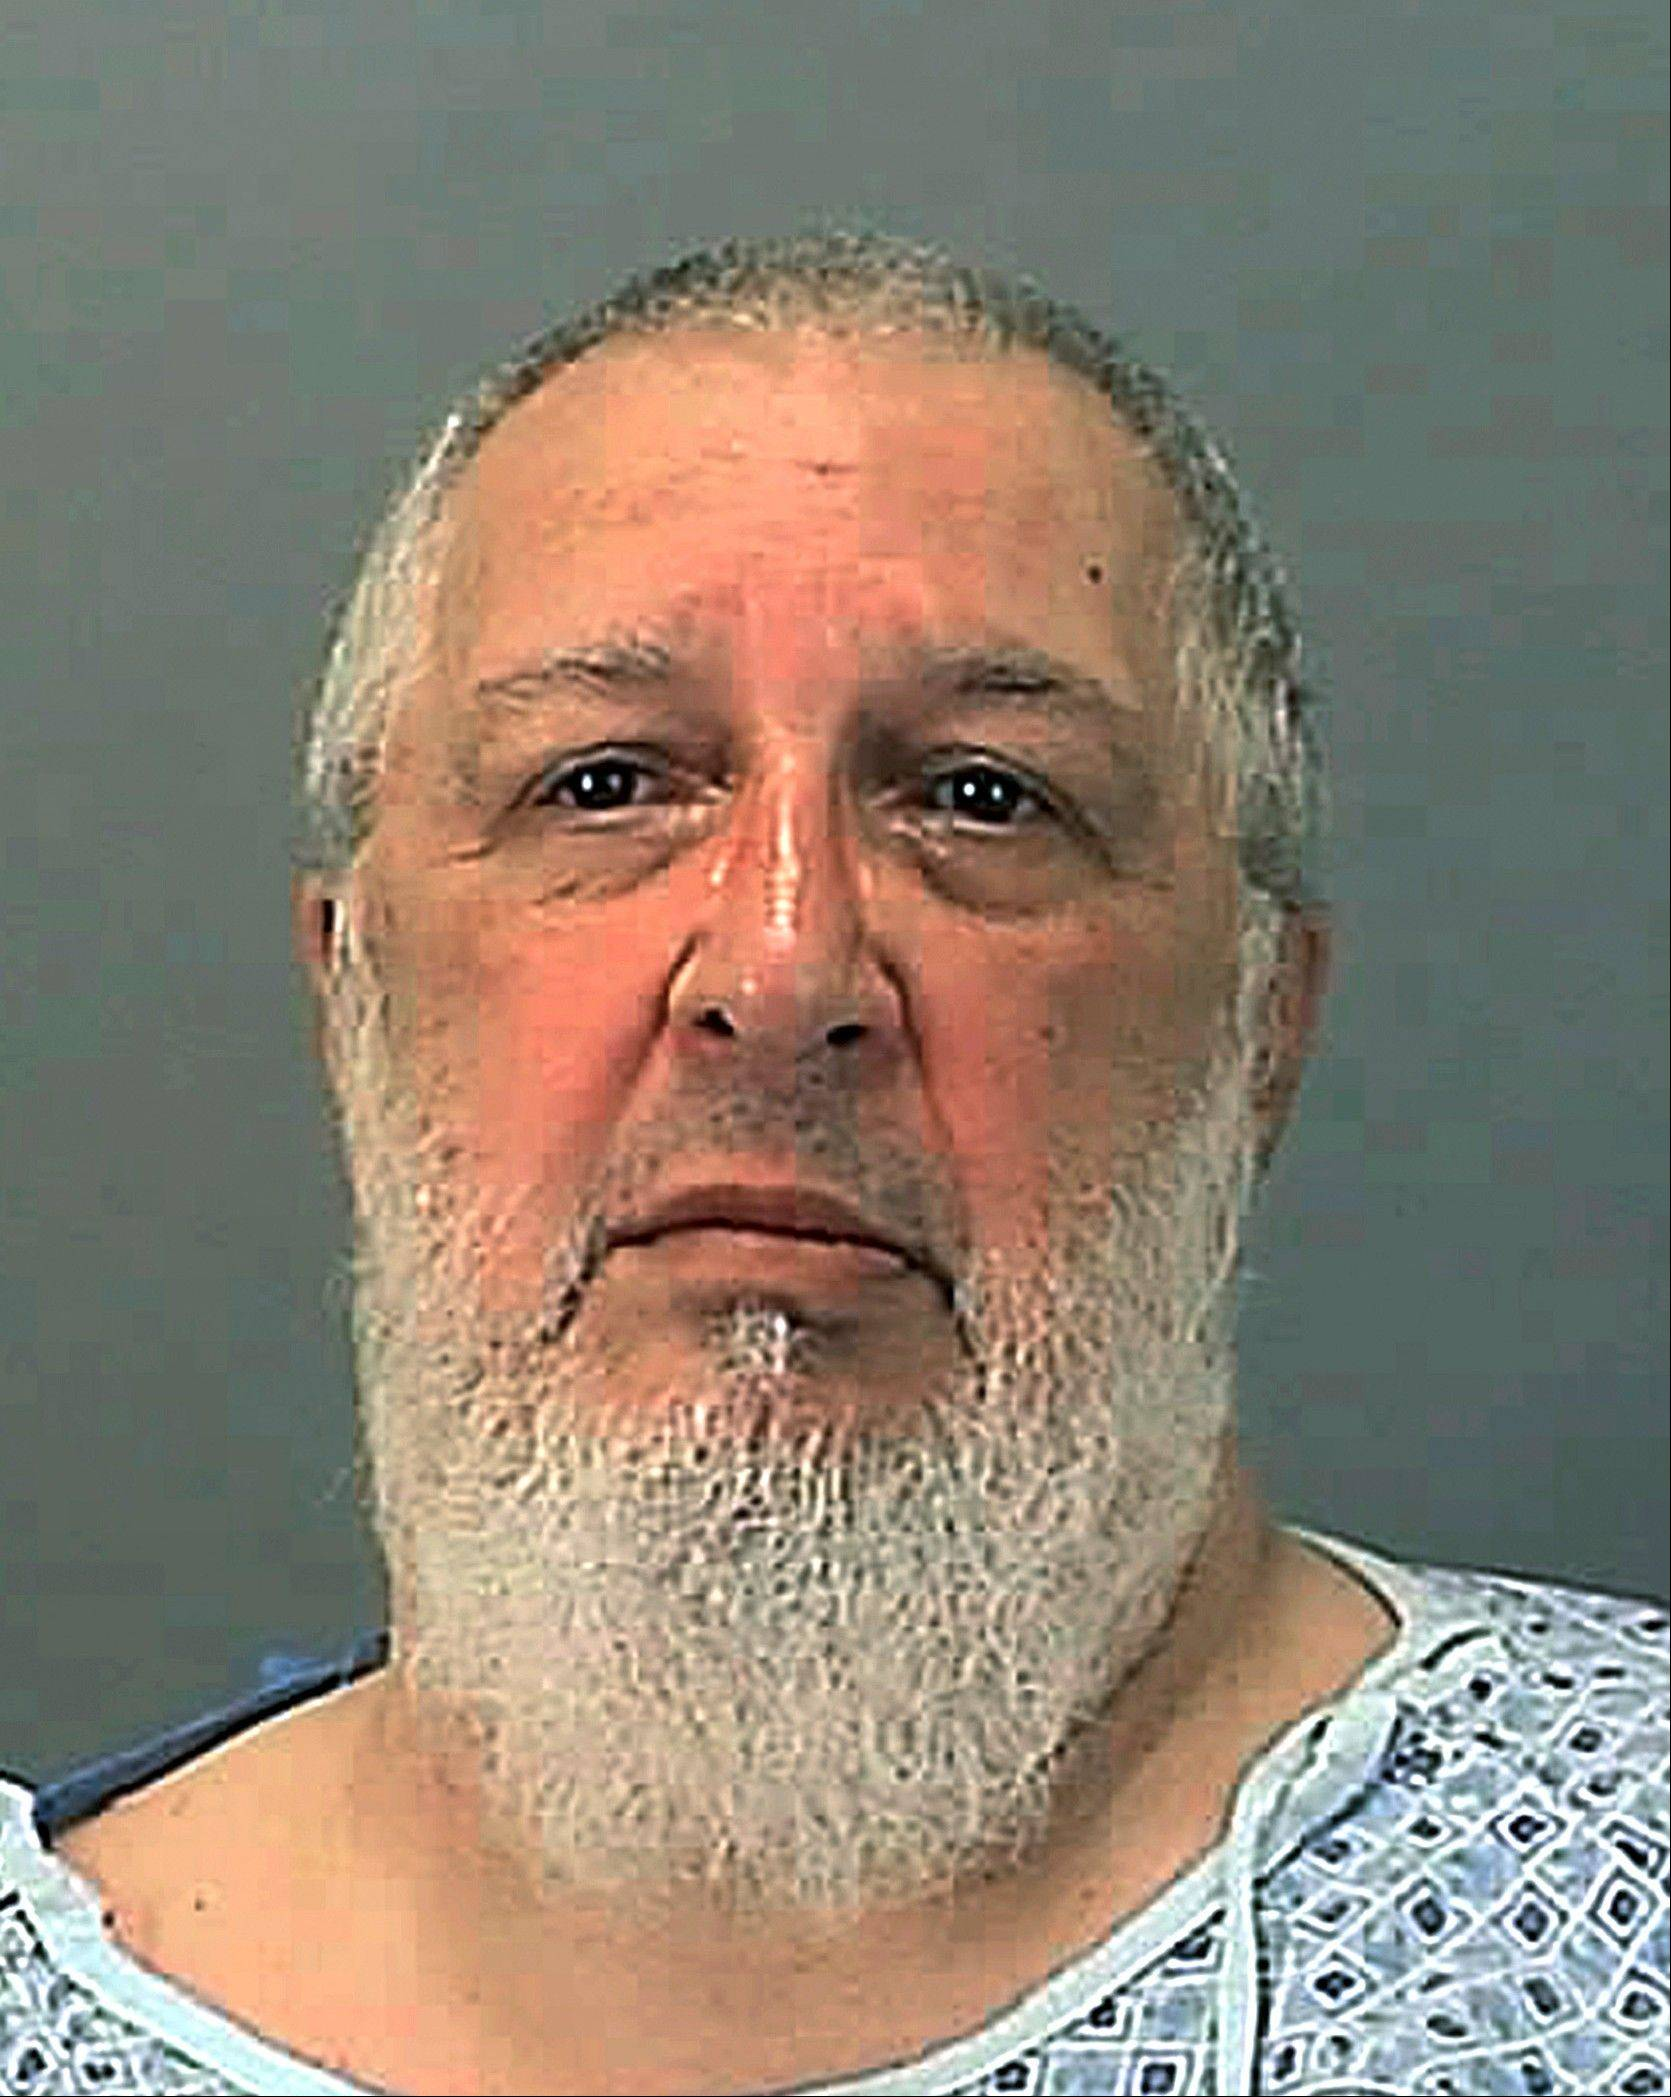 John Wise, partially disabled by nerve damage, is facing charges of shooting his wife in the head in a hospital, presumably as a mercy killing.